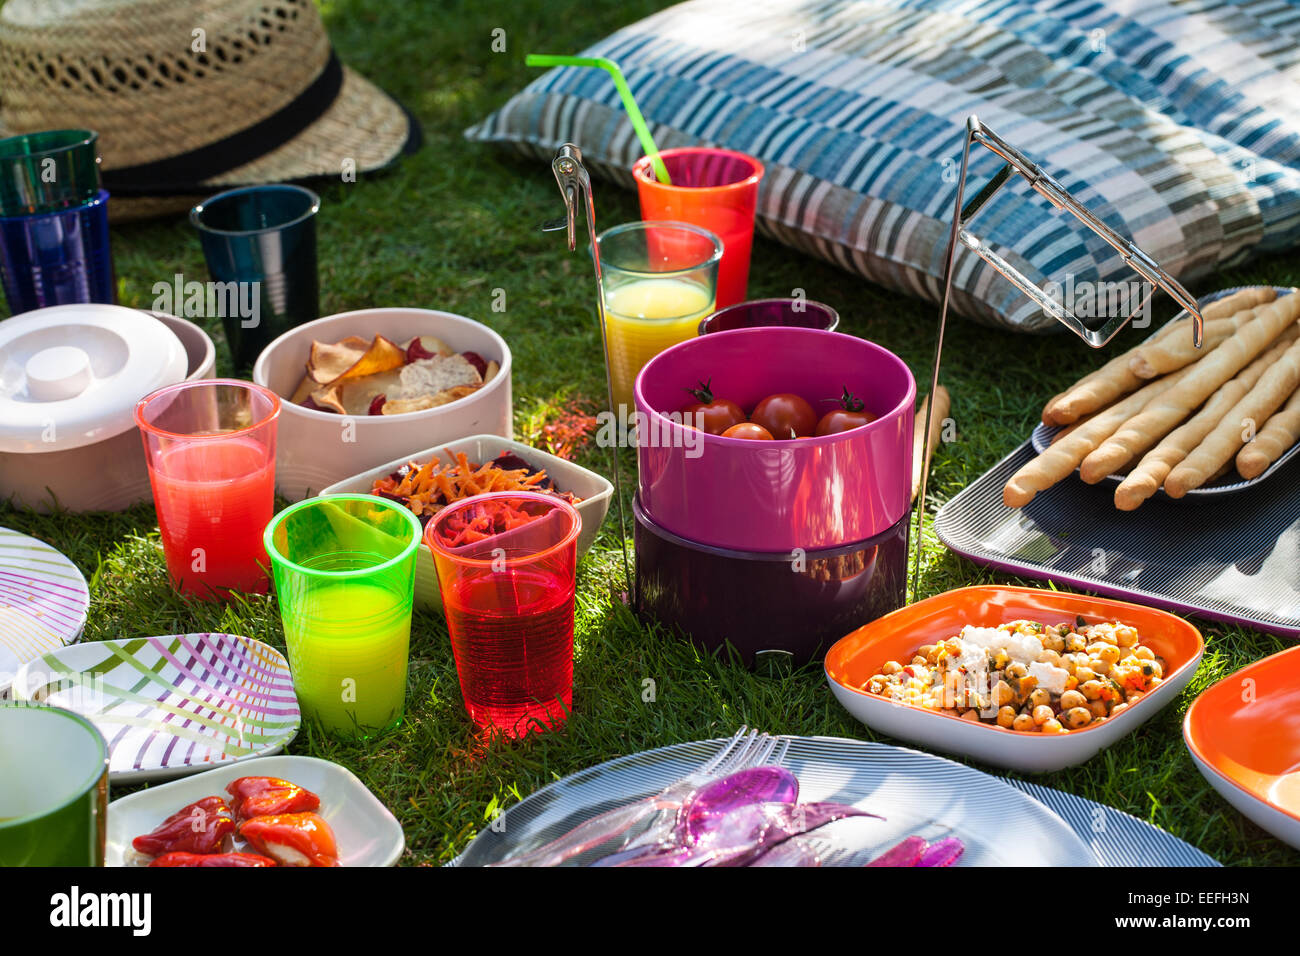 Outdoor picnic with plastic Habitat plates and cups - Stock Image